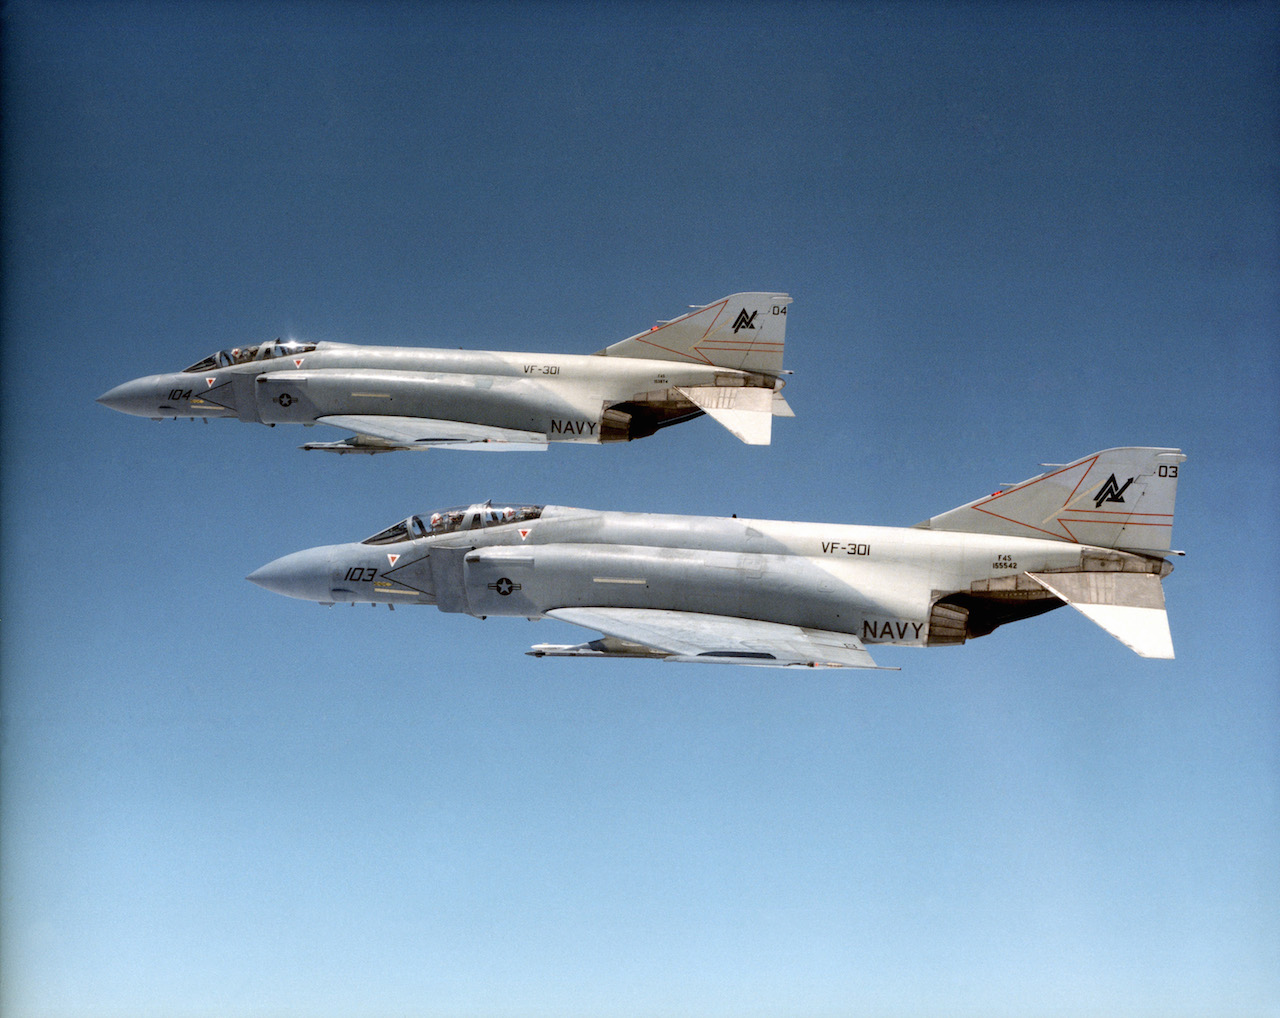 Port view of two F-4S Phantom II, Fighter Squadron (VF)-301, Devil's Disciples, NAS Miramar, in flight. (Photo by PPH2 BRUCE TROMBECKY - USNavy)